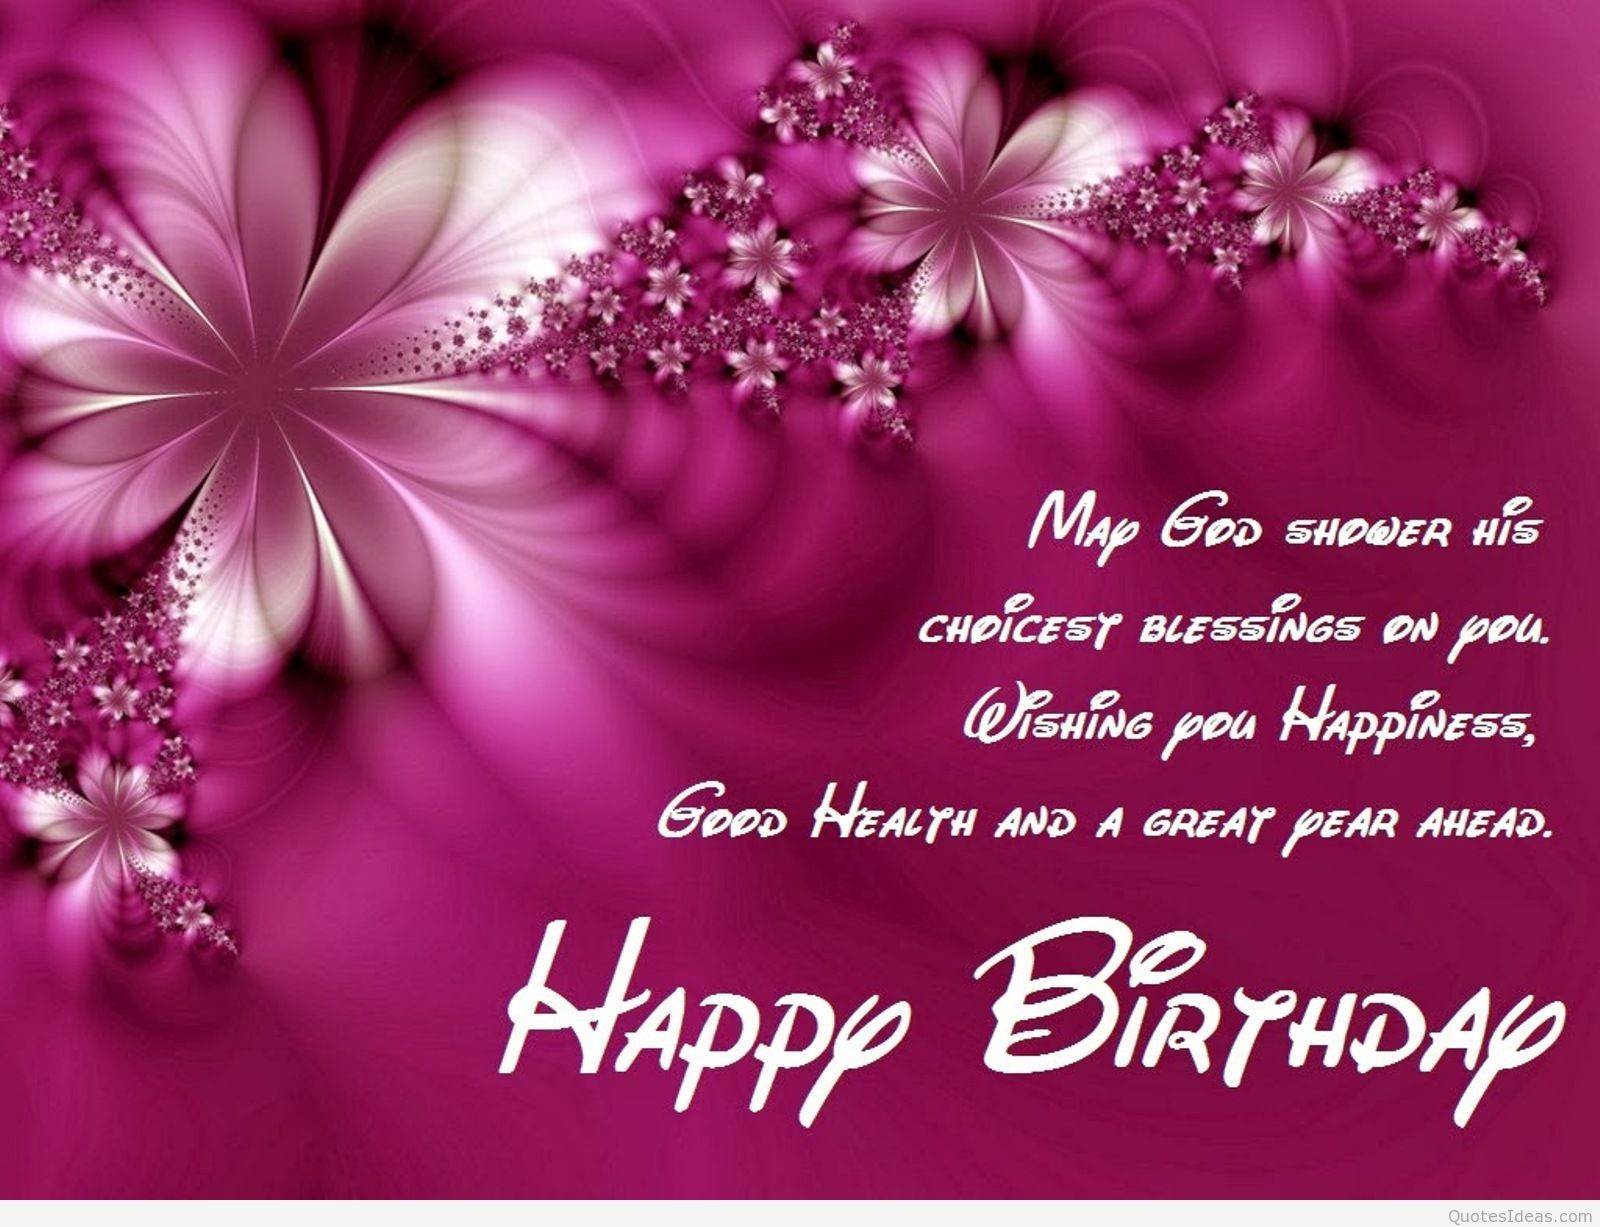 Happy Birthday Quotes Images Happy Birthday Wallpapers The 20 Best Ideas For Quotes Birthday Birthday Wishes For Sister Best Birthday Wishes Birthday Wishes